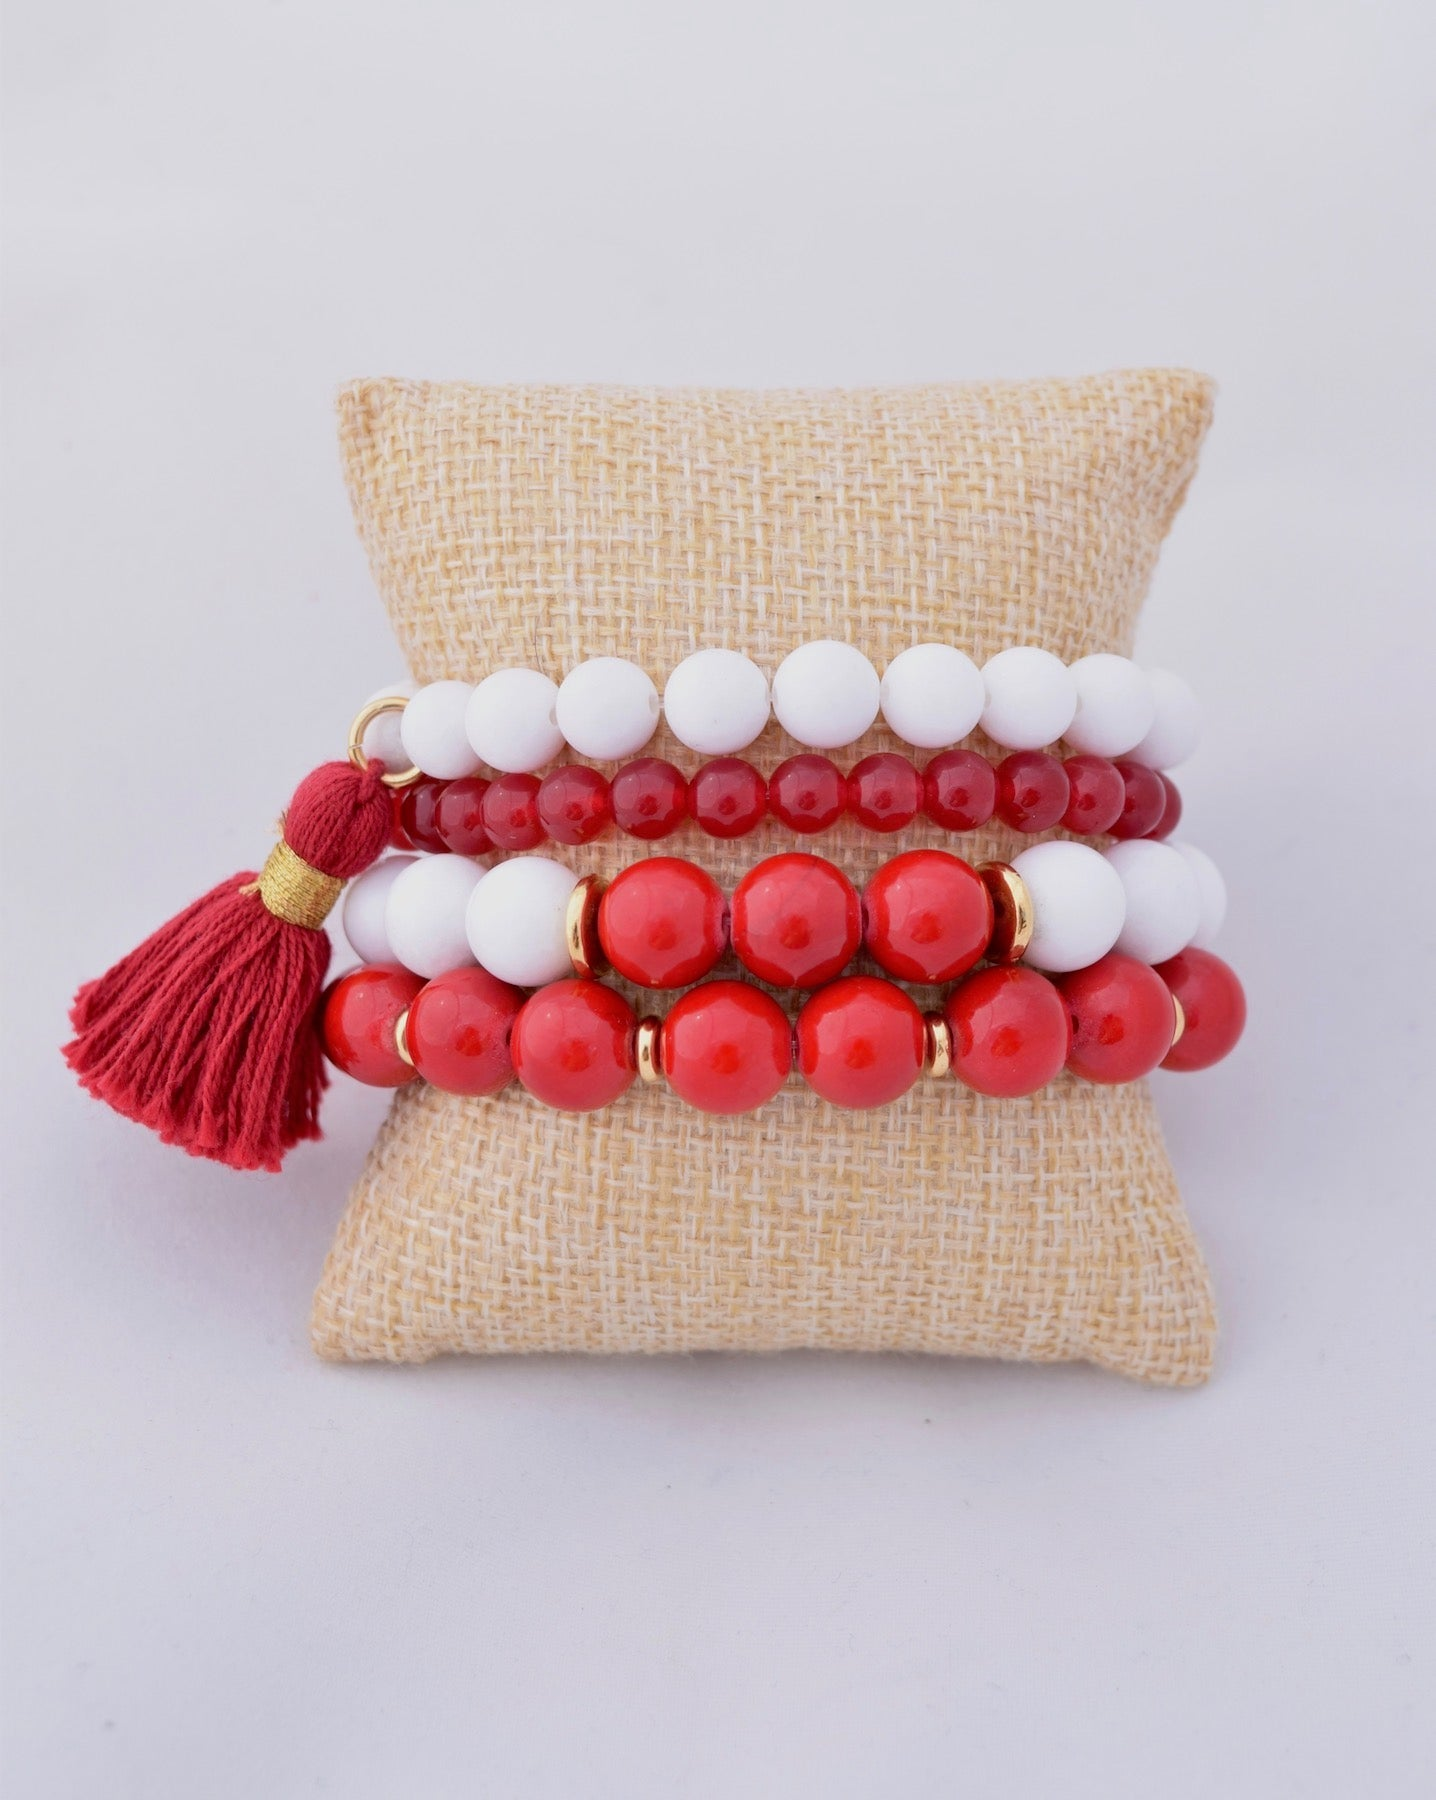 Red and White Beaded Bracelet Stack